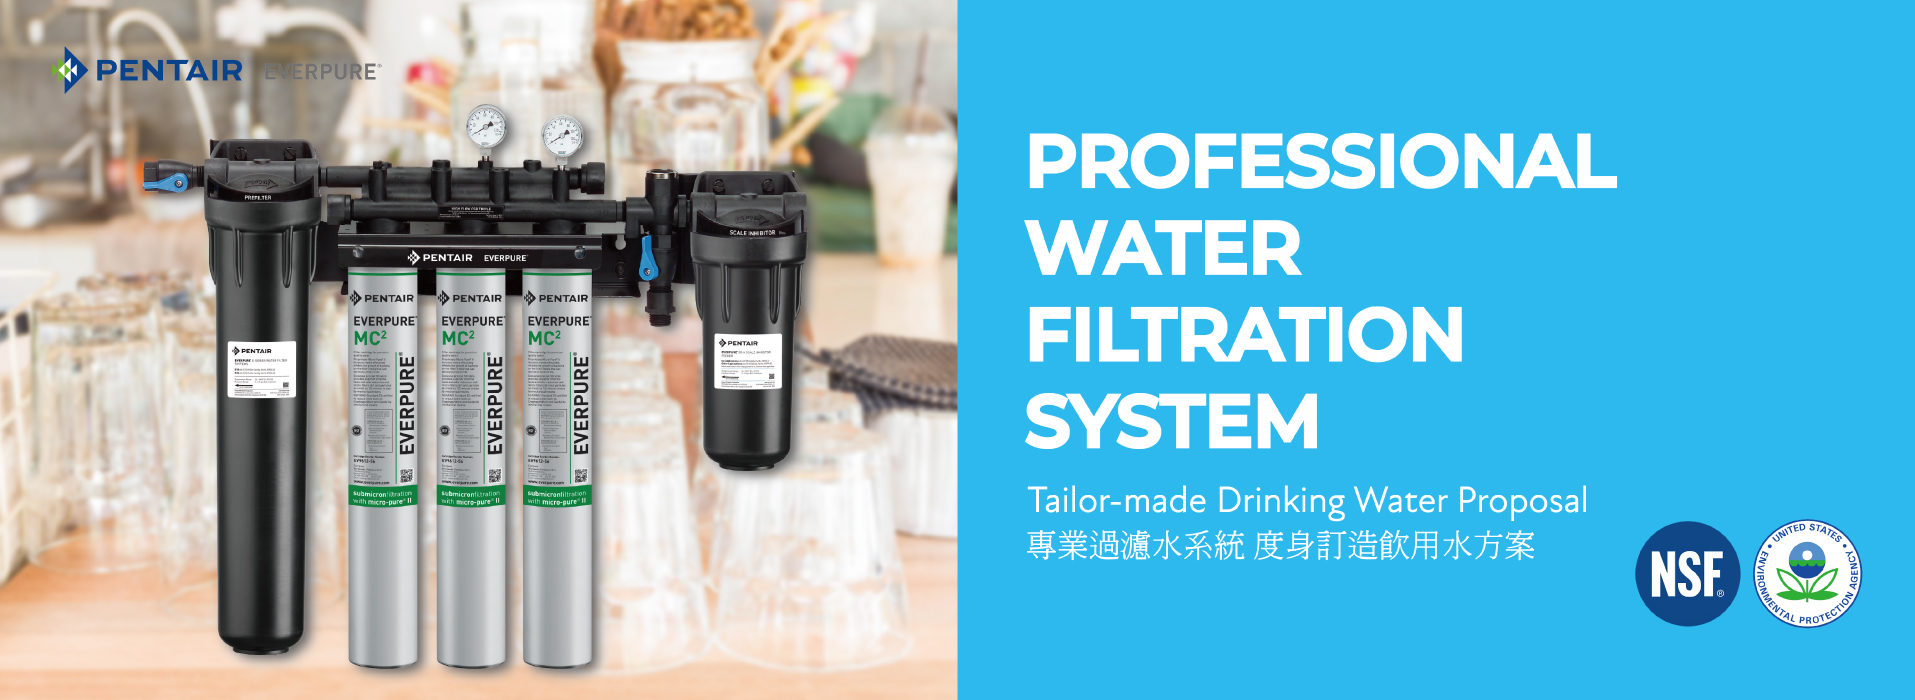 Professional Water Filtration System banner